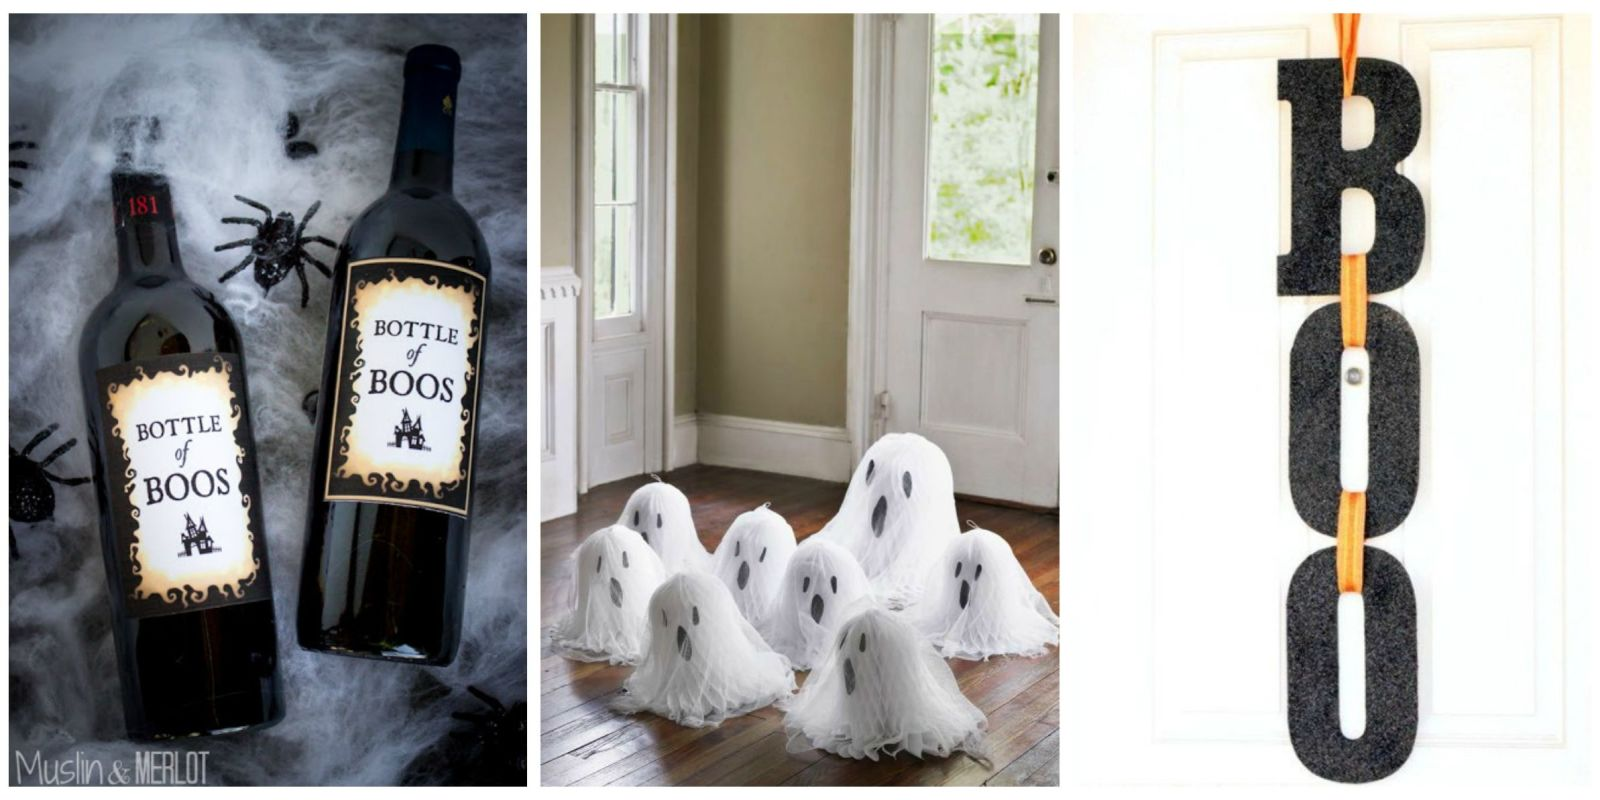 40 easy diy halloween decorations homemade do it yourself halloween decor ideas - Homemade Halloween Decorations Ideas